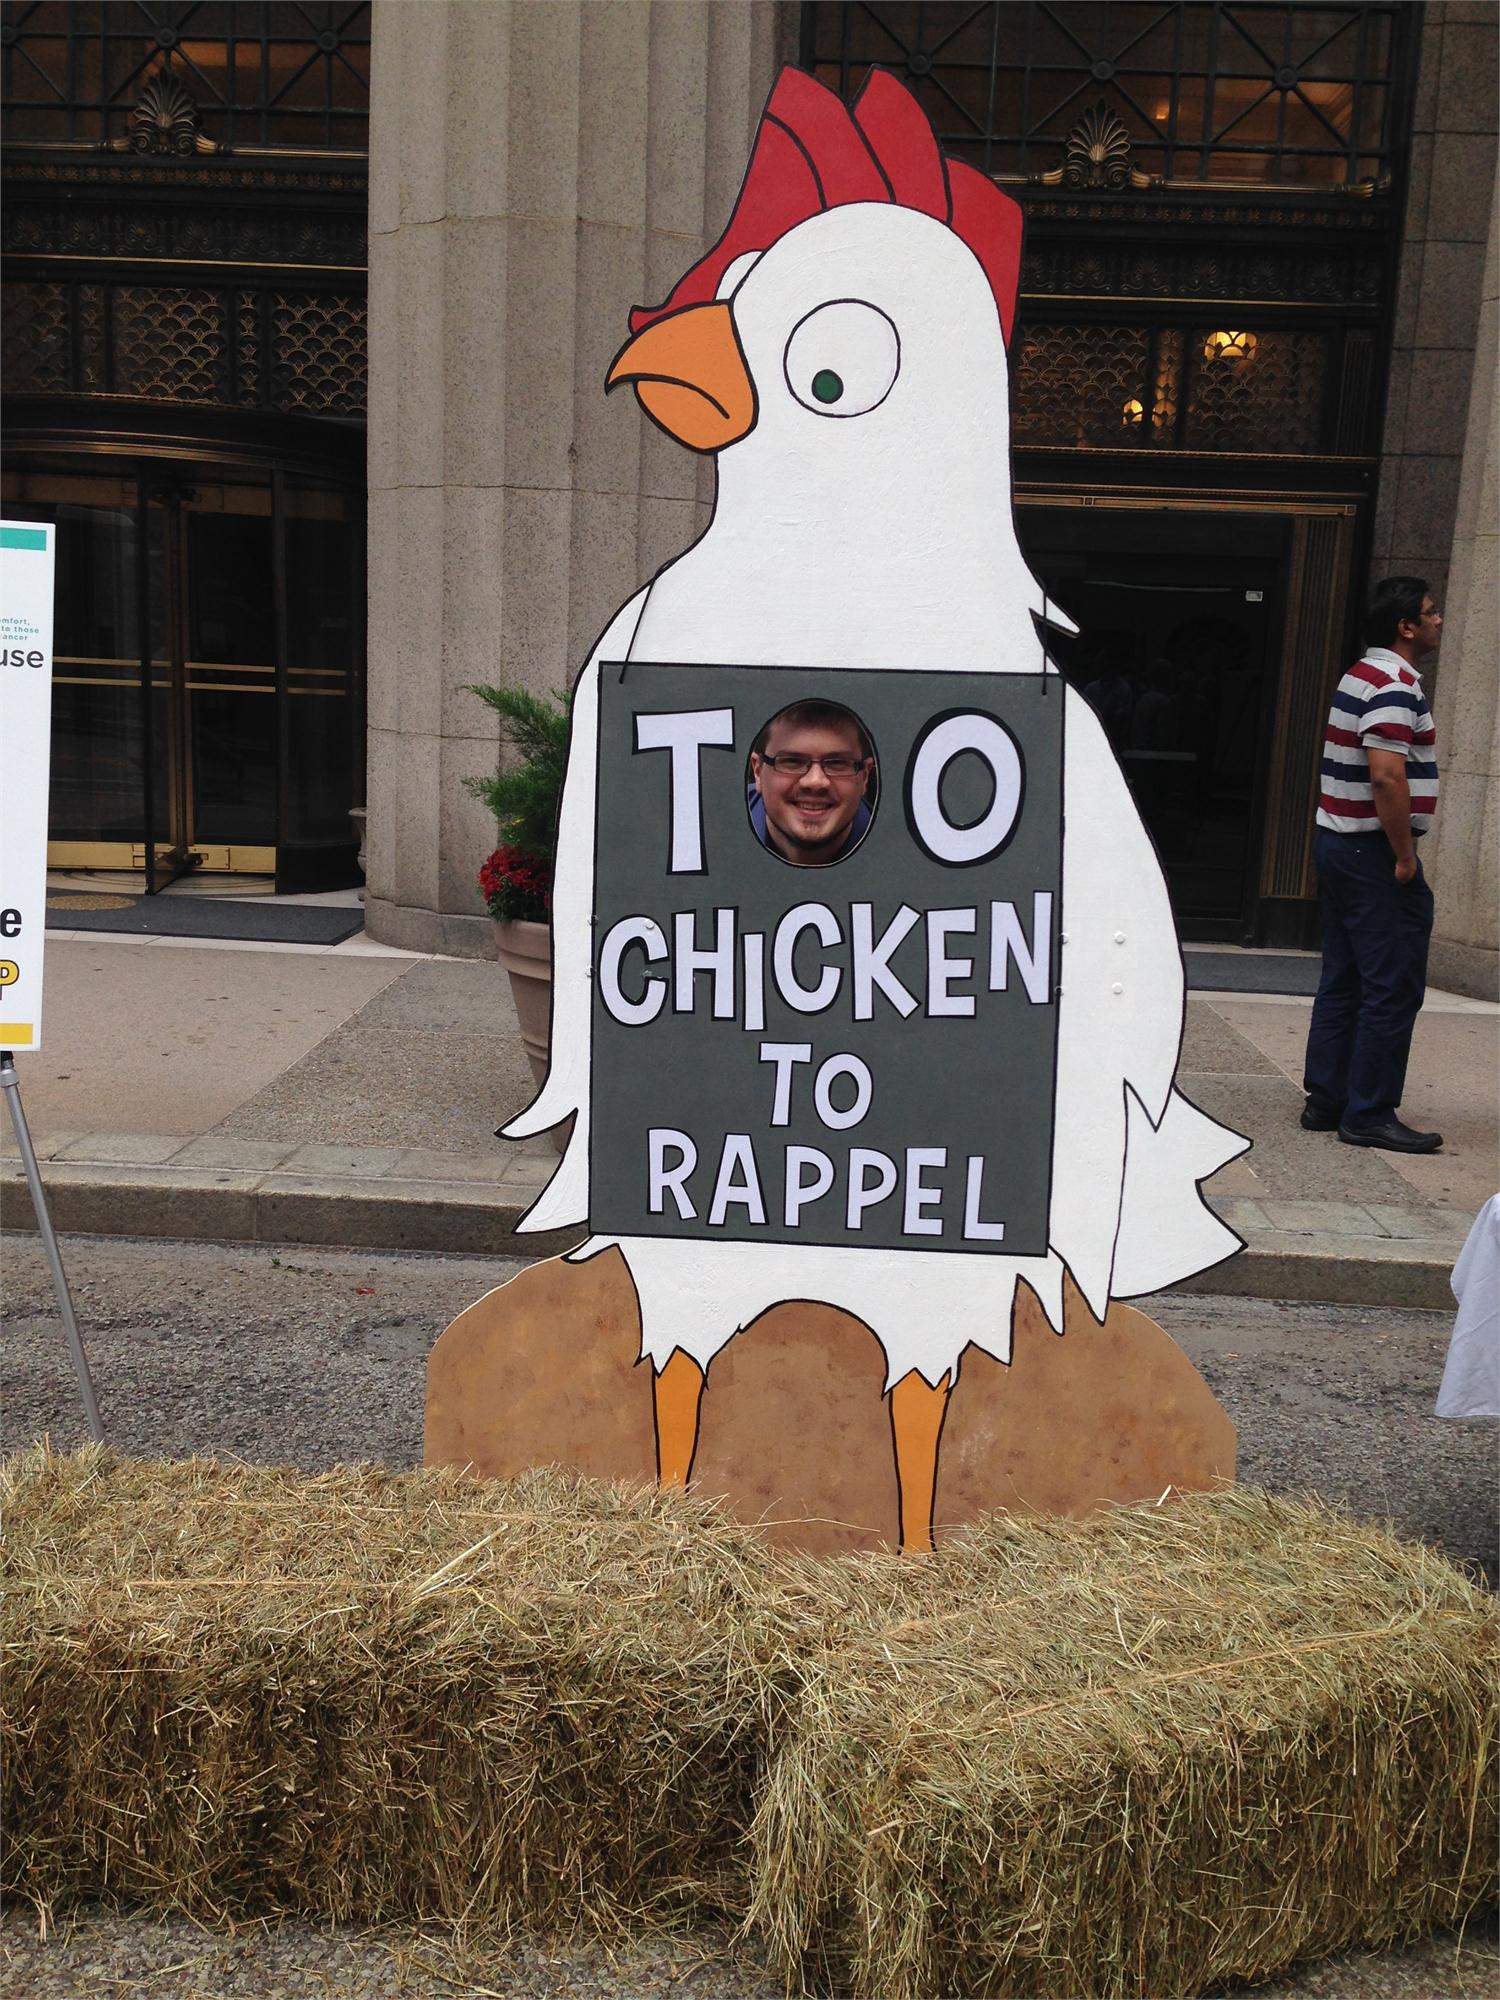 Too Chicken to Reppel?